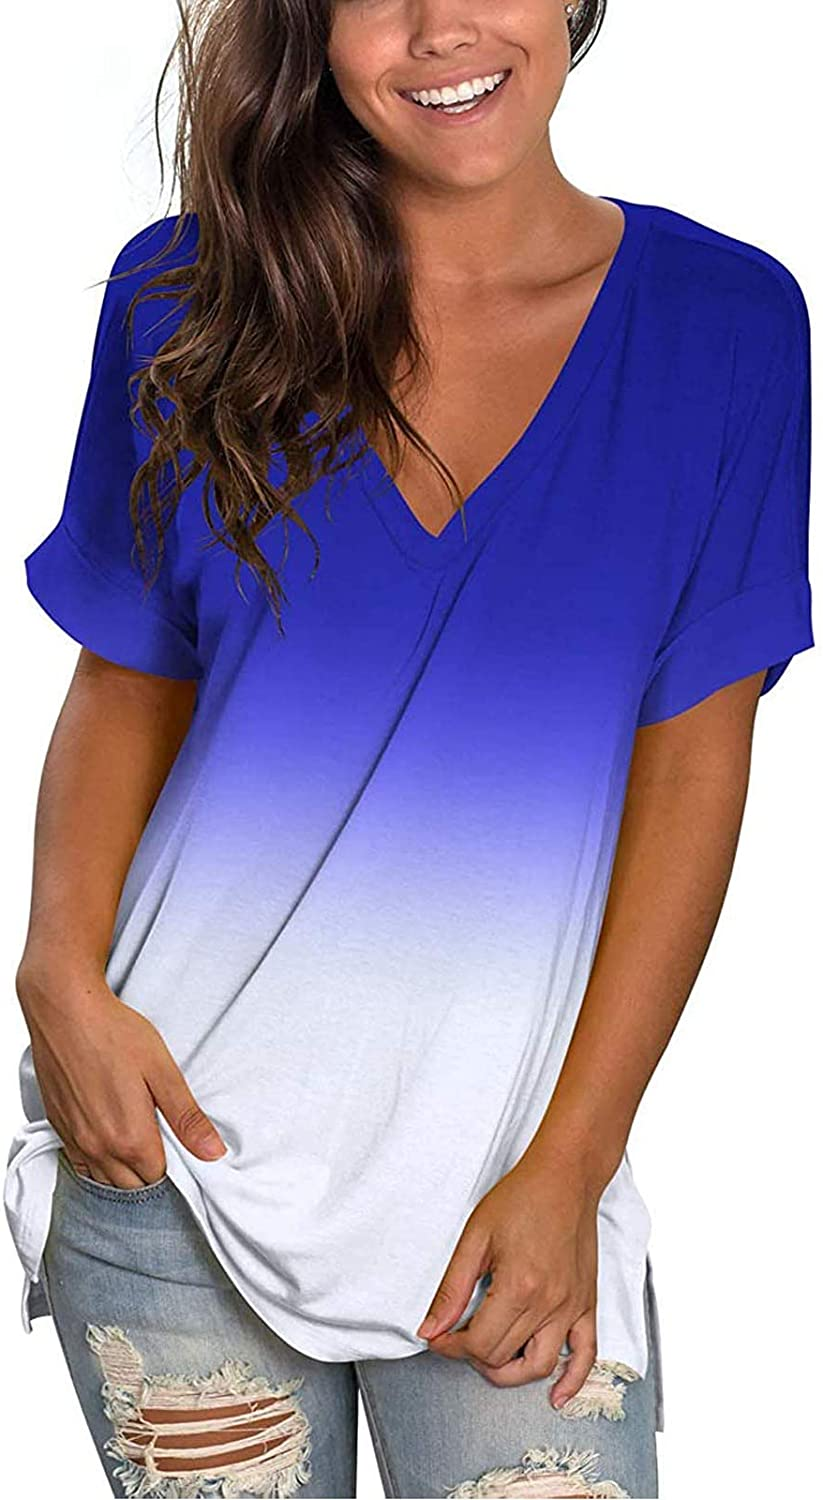 Womens Summer Tops,Women's Tie Dye Print T-Shirts Casual Short Sleeve Tops Blouse V-Neck Tunic Tee Tops